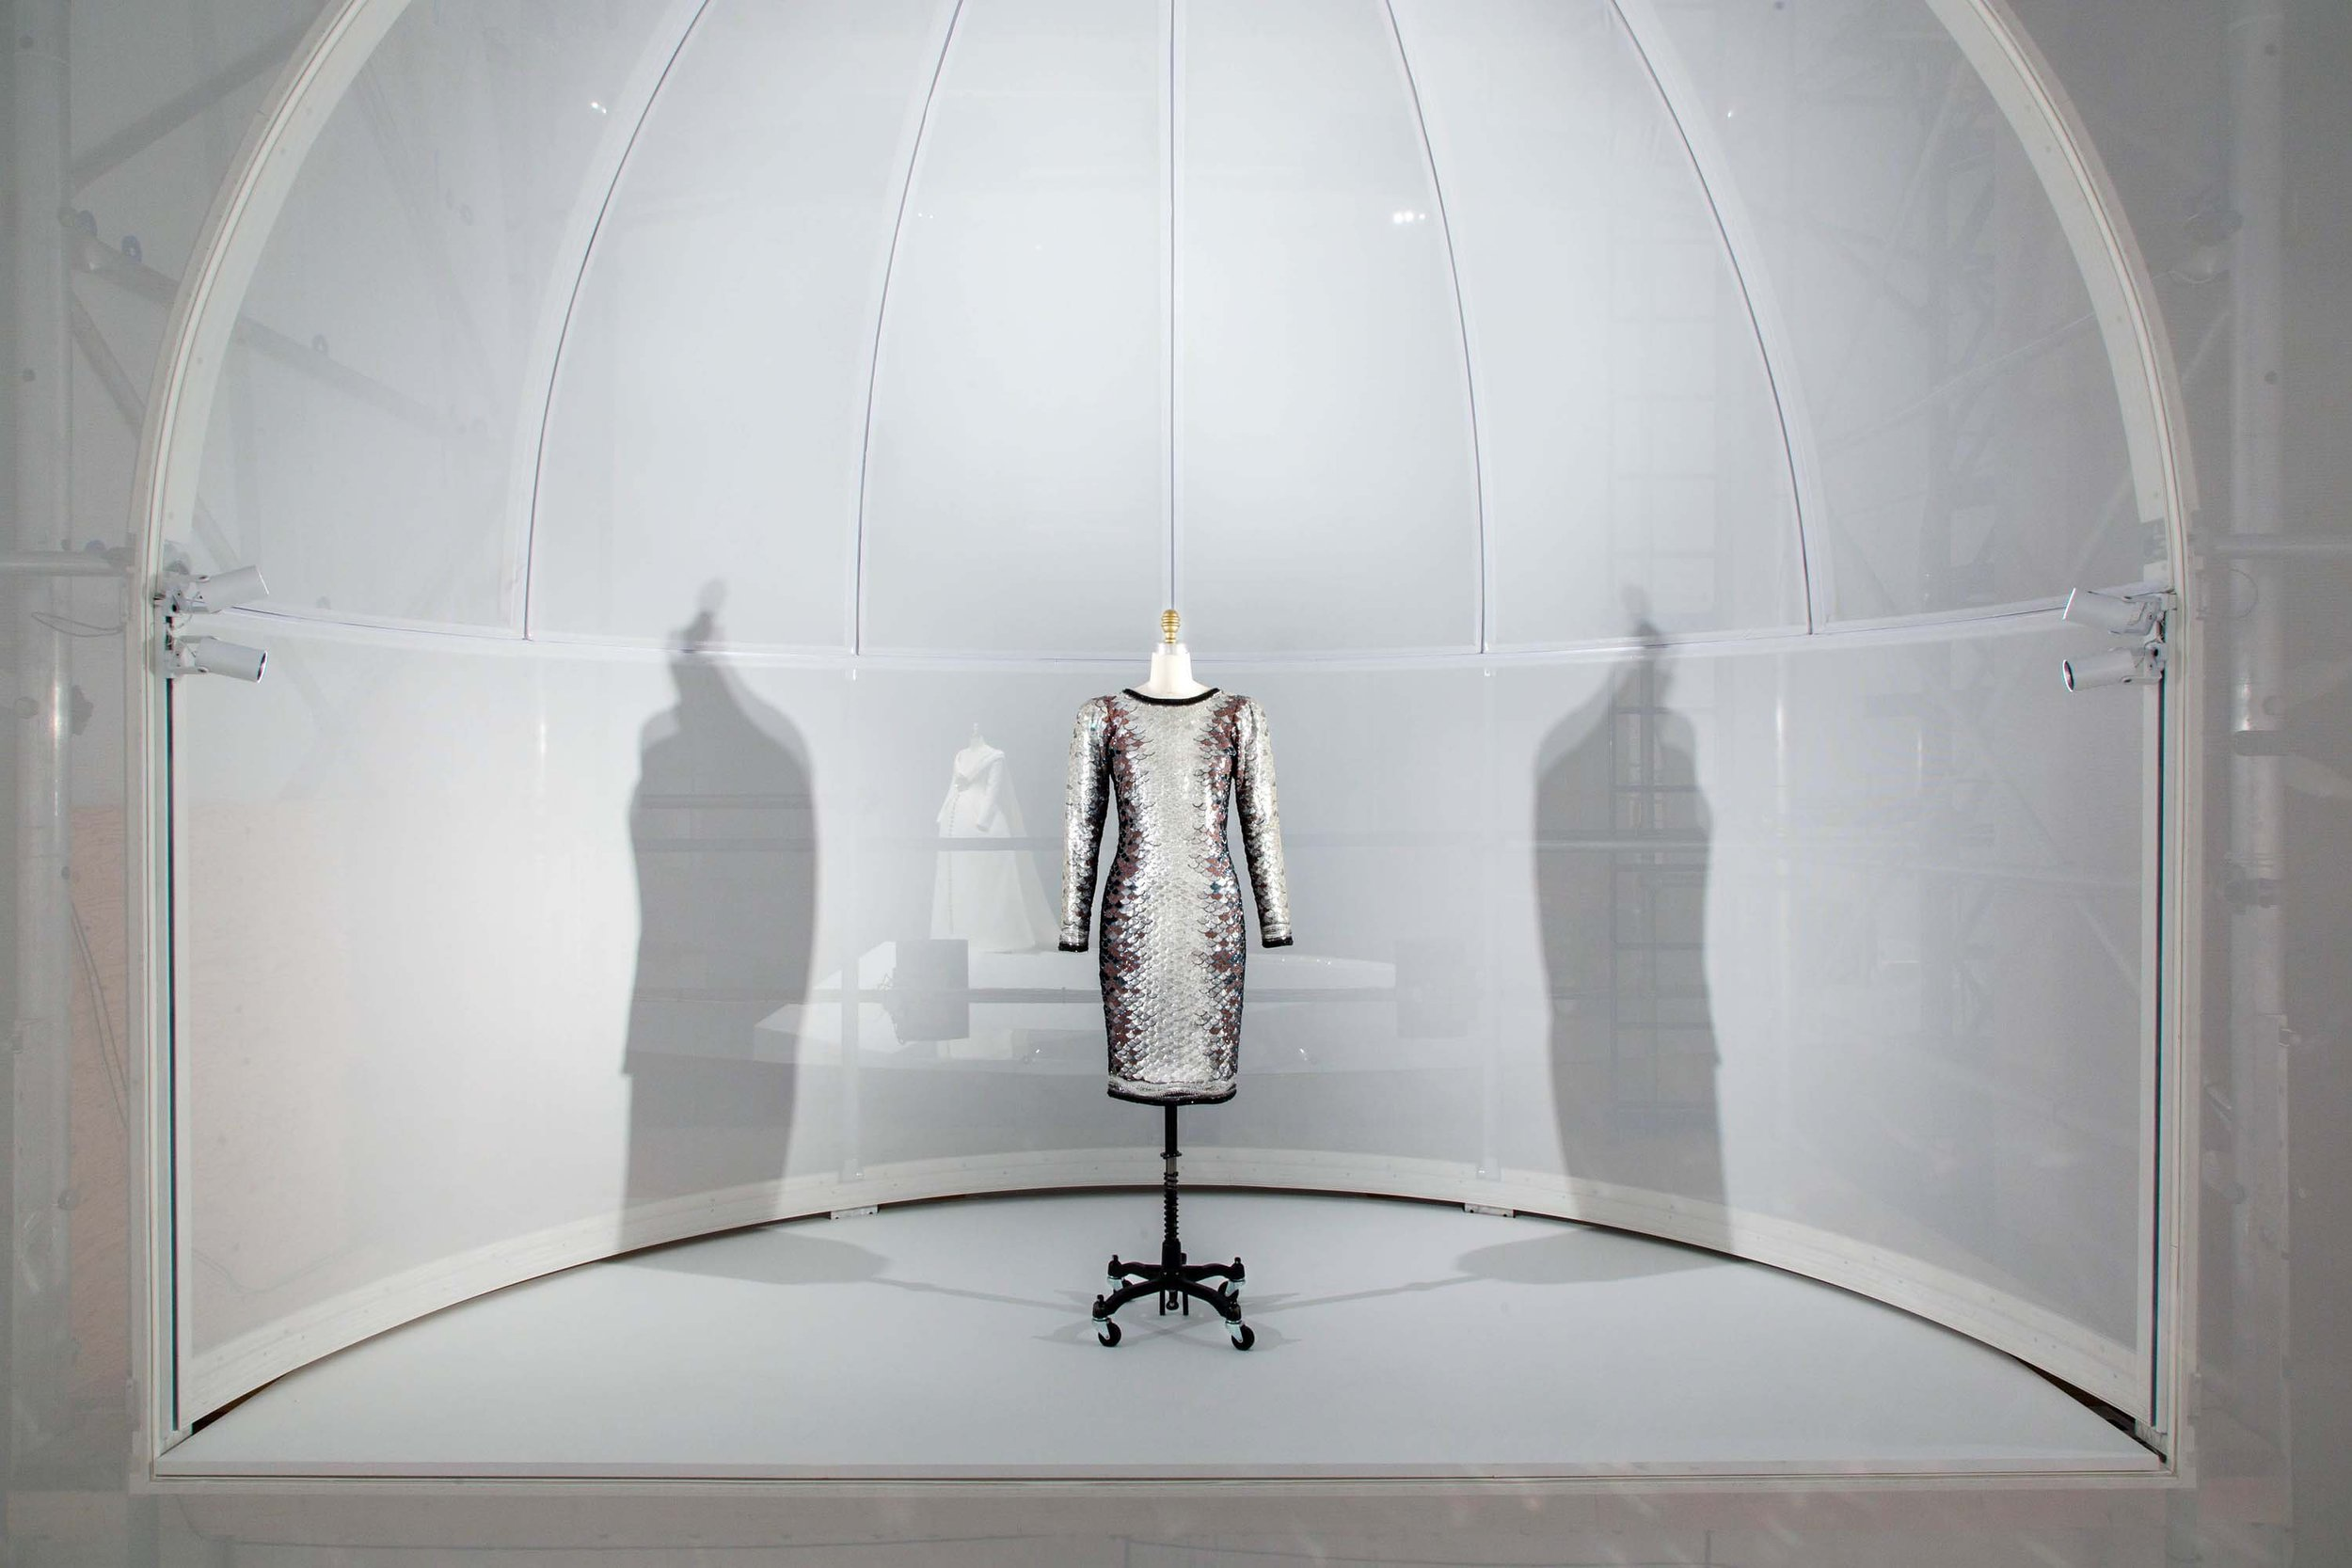 Met_Manus_Machina_Fashion_Exhibition_New_York_1.jpeg